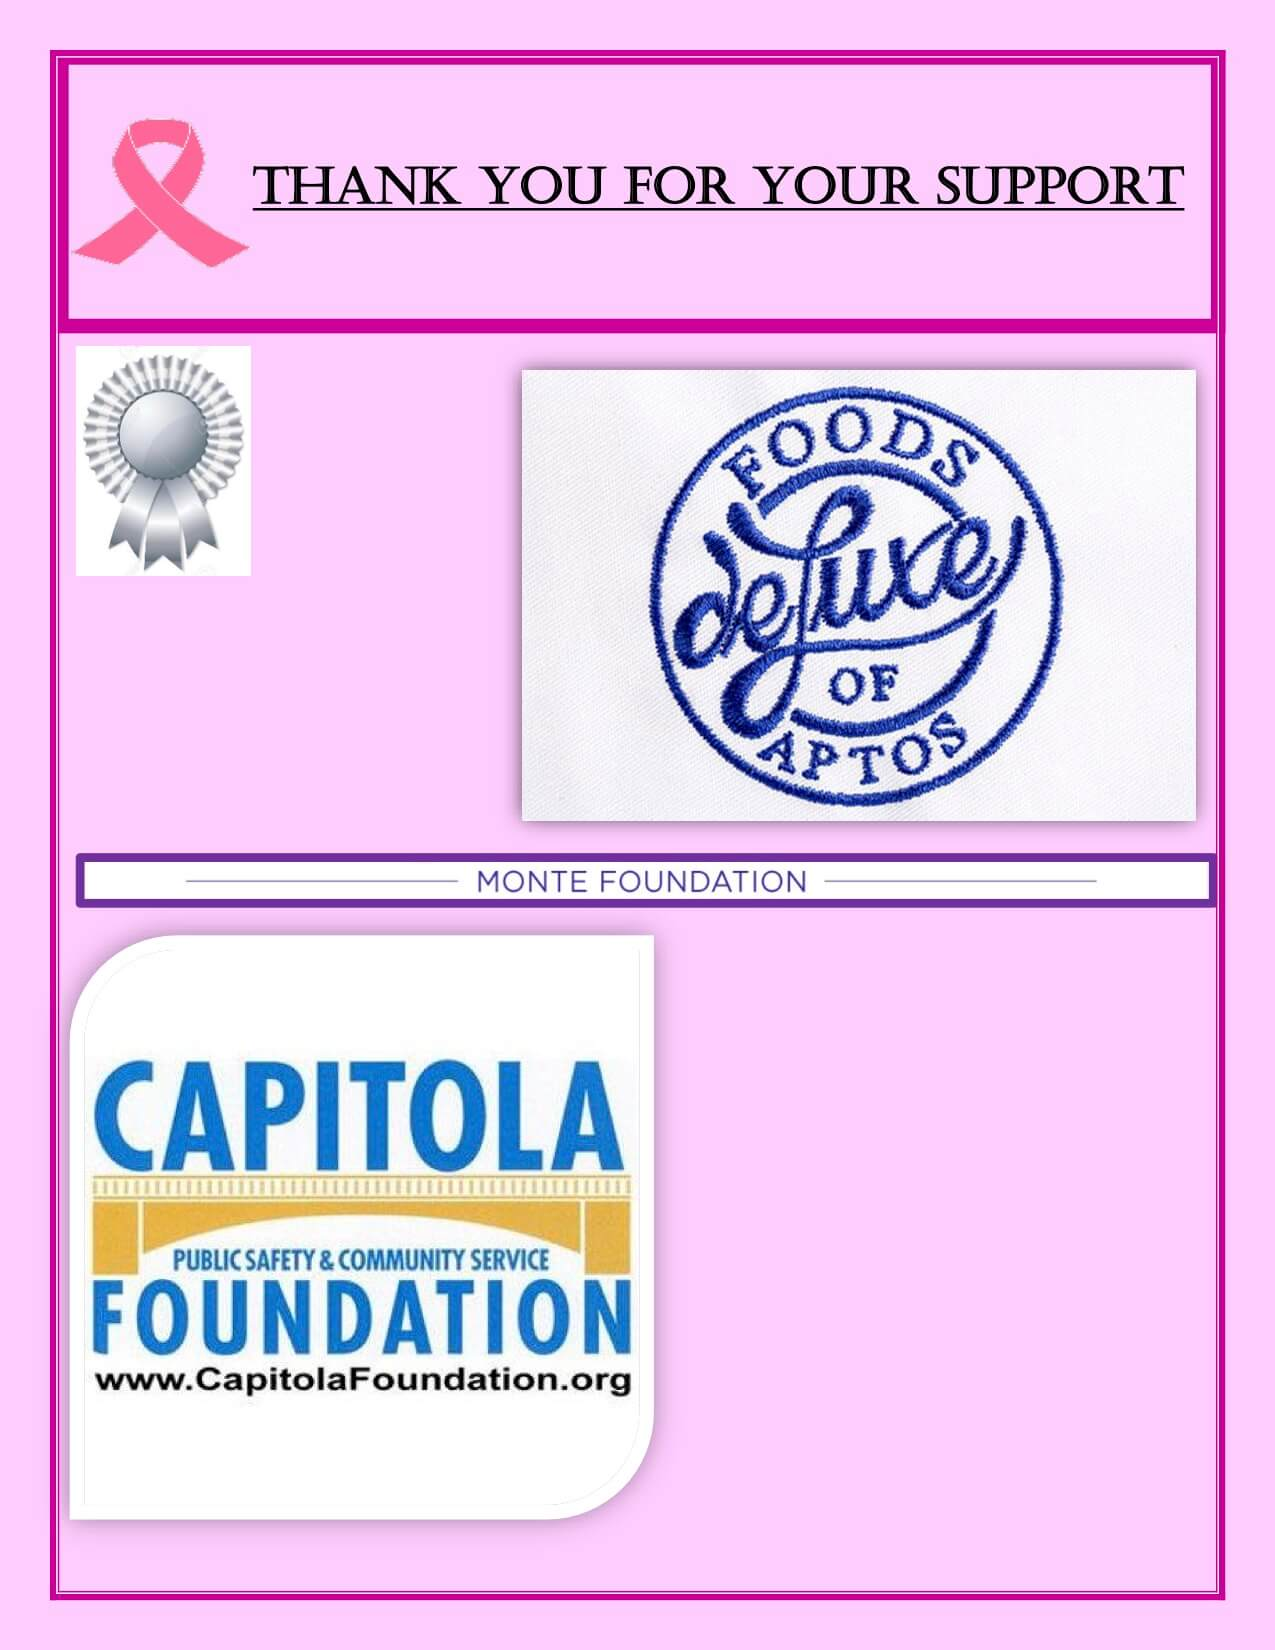 CapitolaPinkPatch